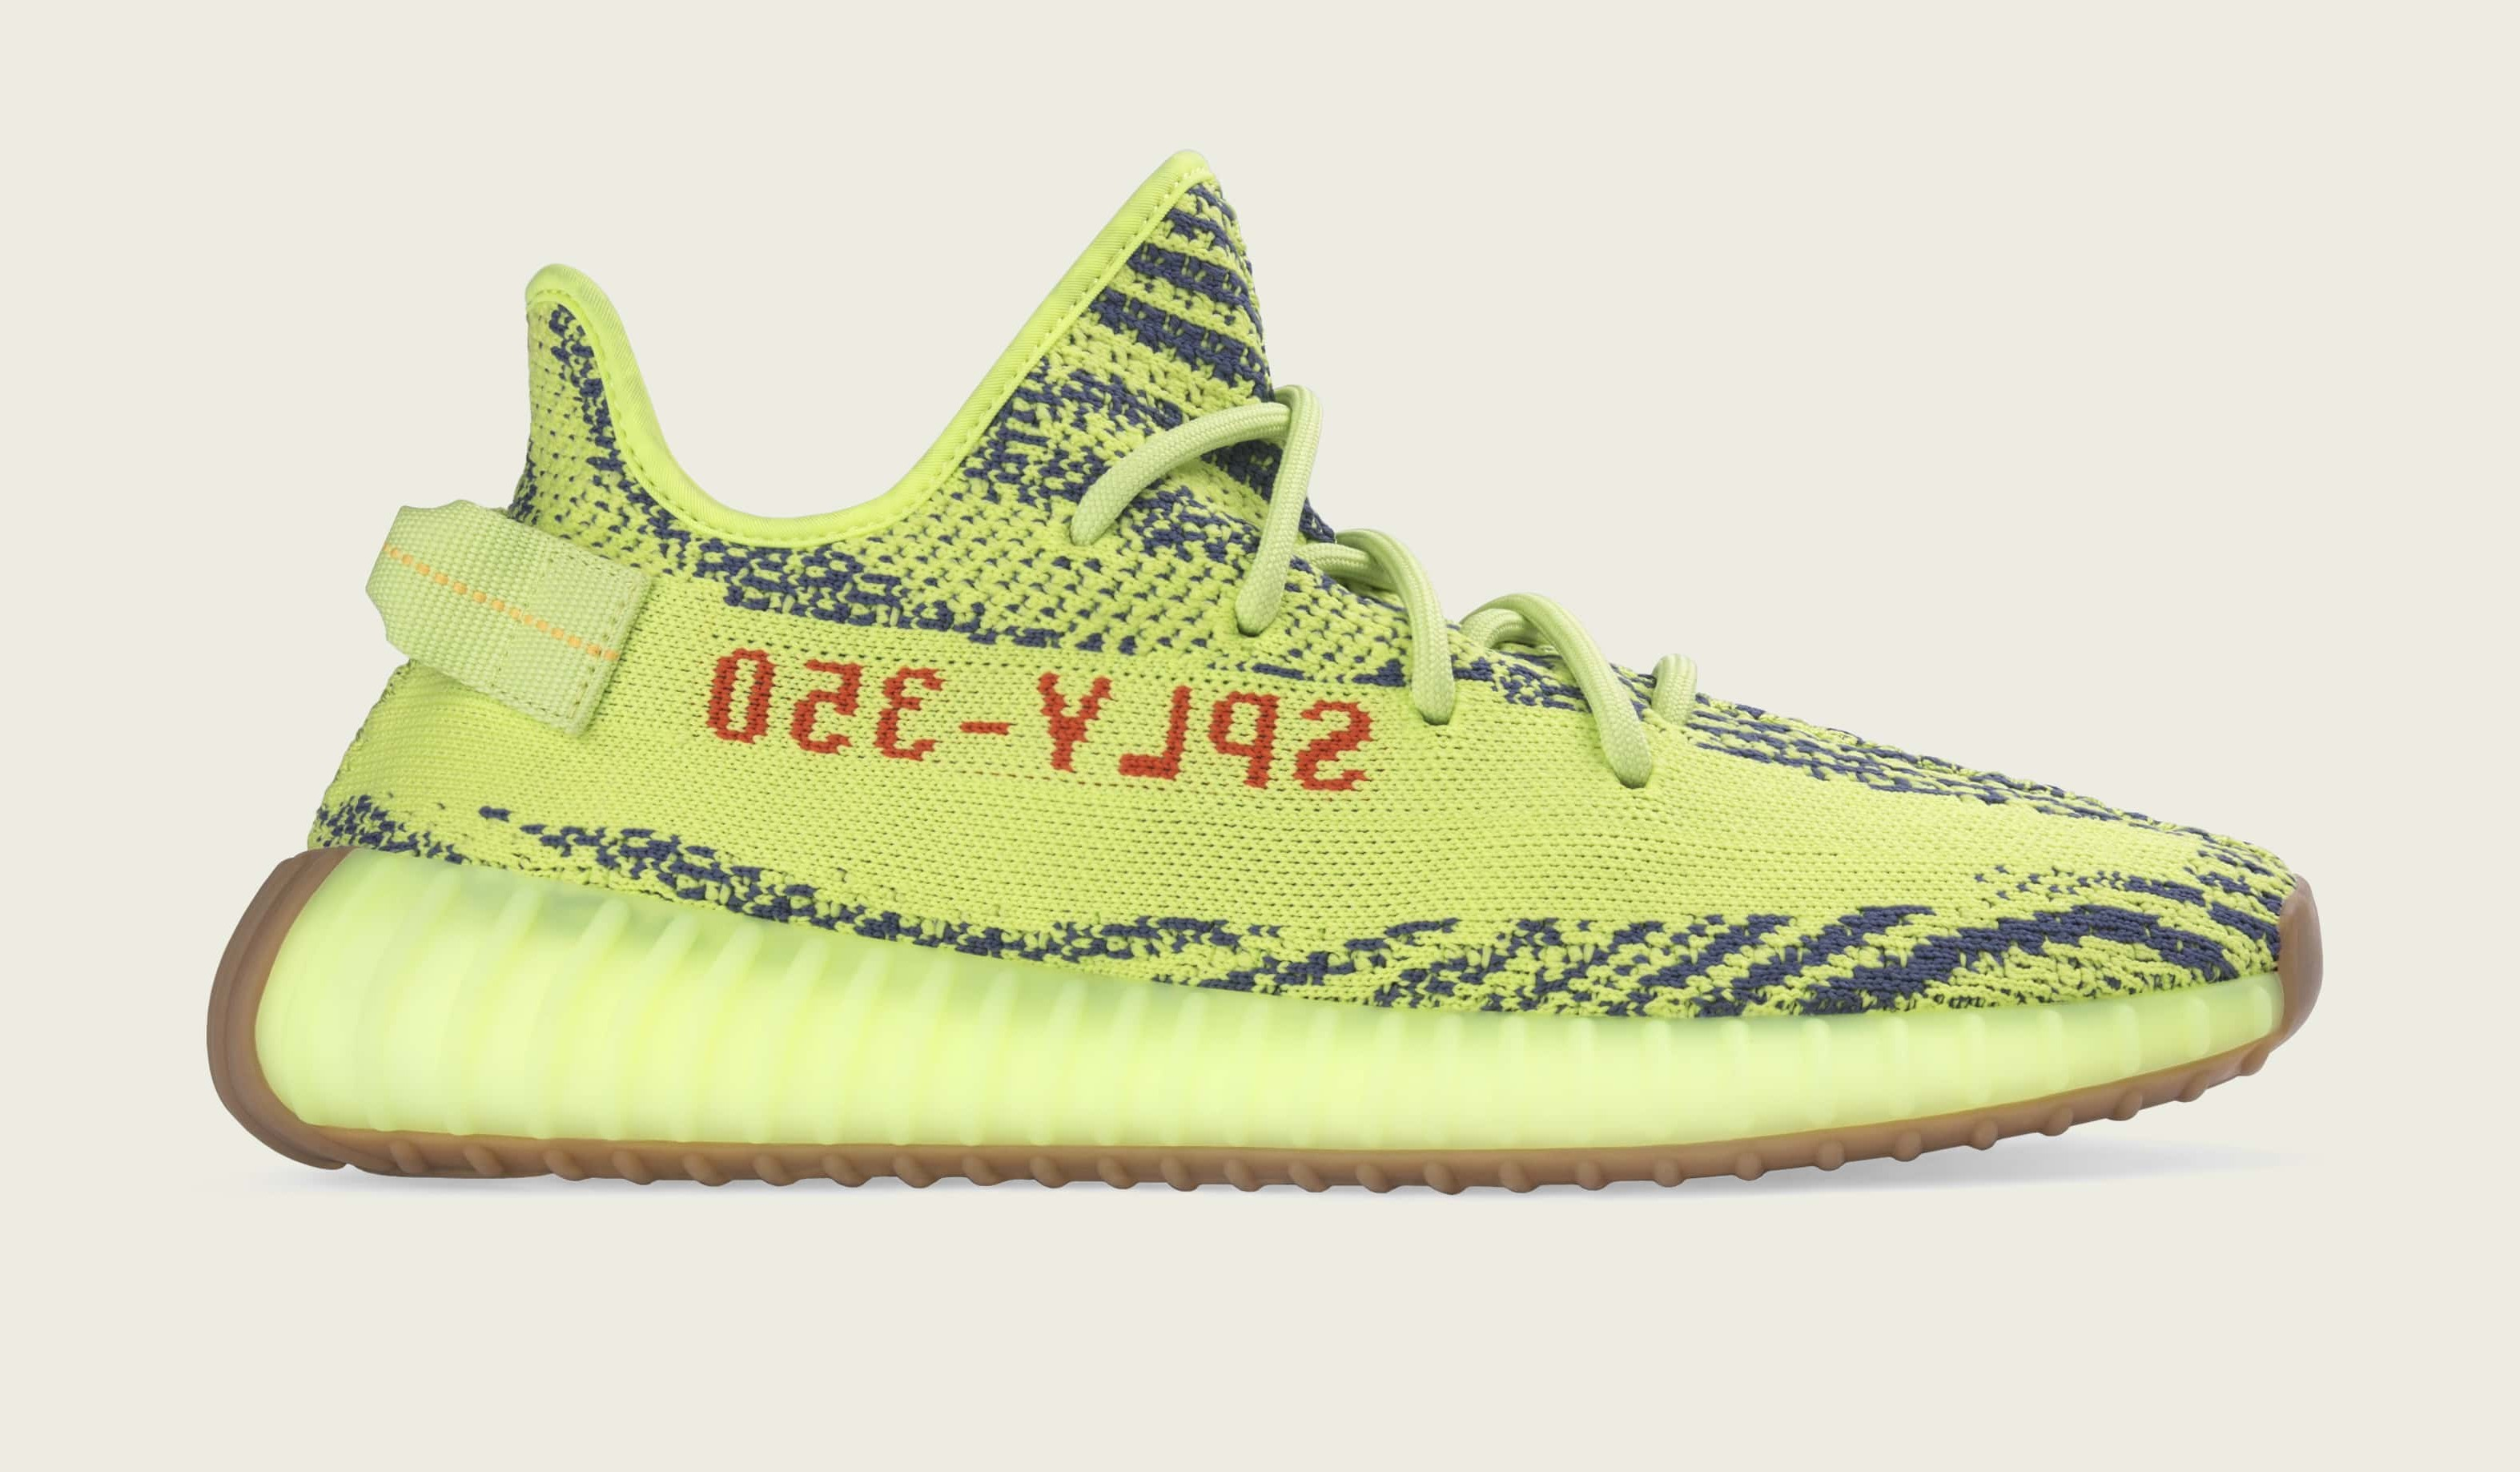 promo code 437e1 88ee1 Adidas Yeezy Boost 350 V2  Semi Frozen Yellow  B37572 Official Images   Sole  Collector